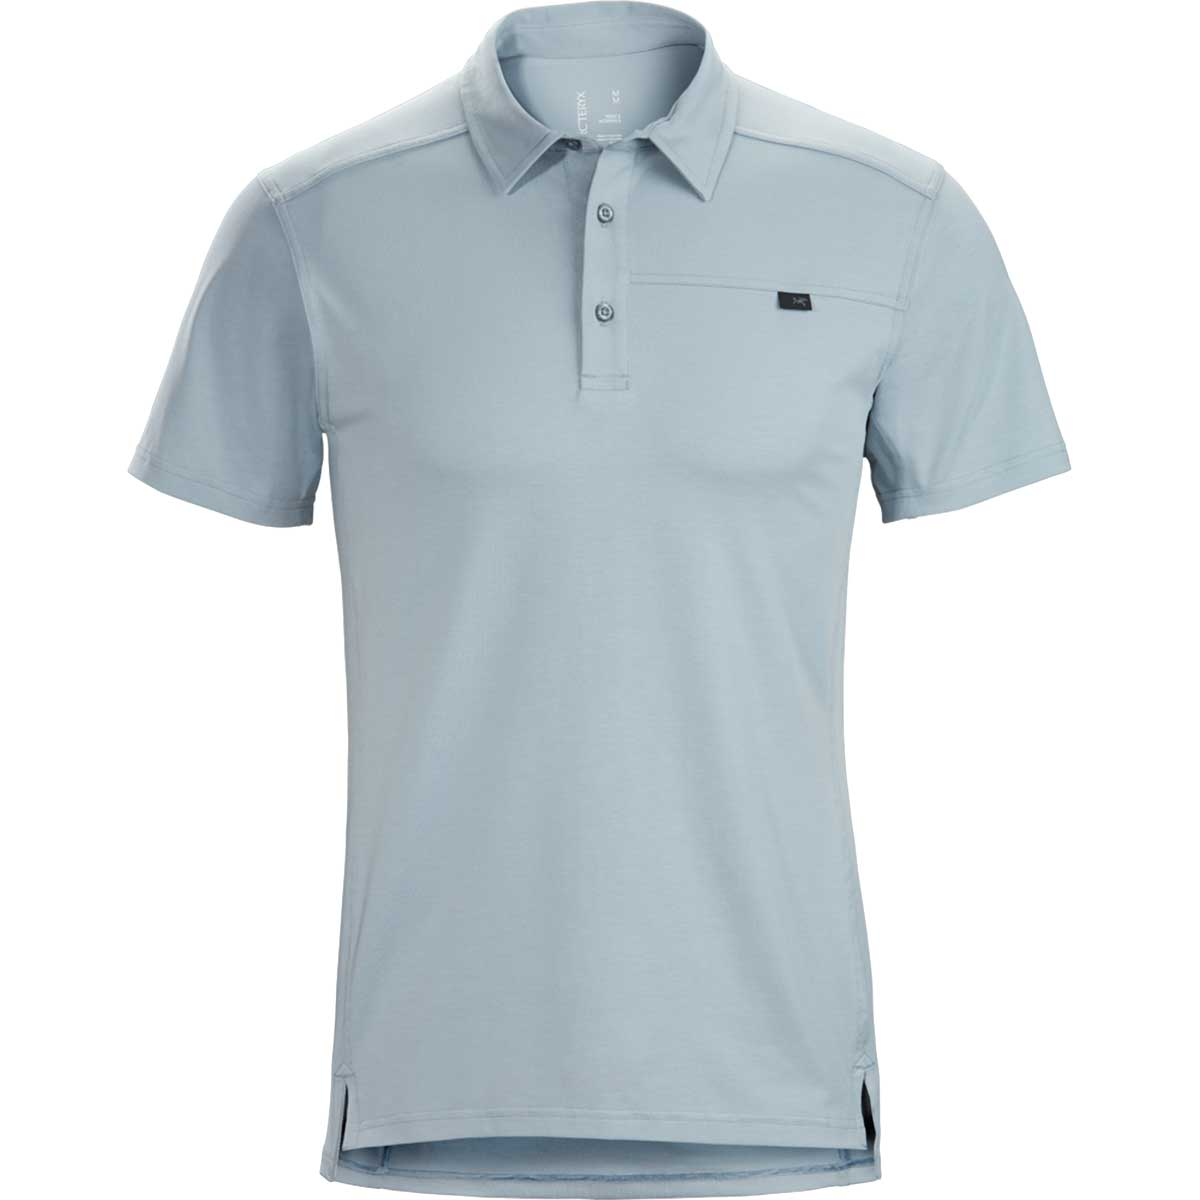 Arcteryx men's Captive Polo Shirt in Aeroscene front view